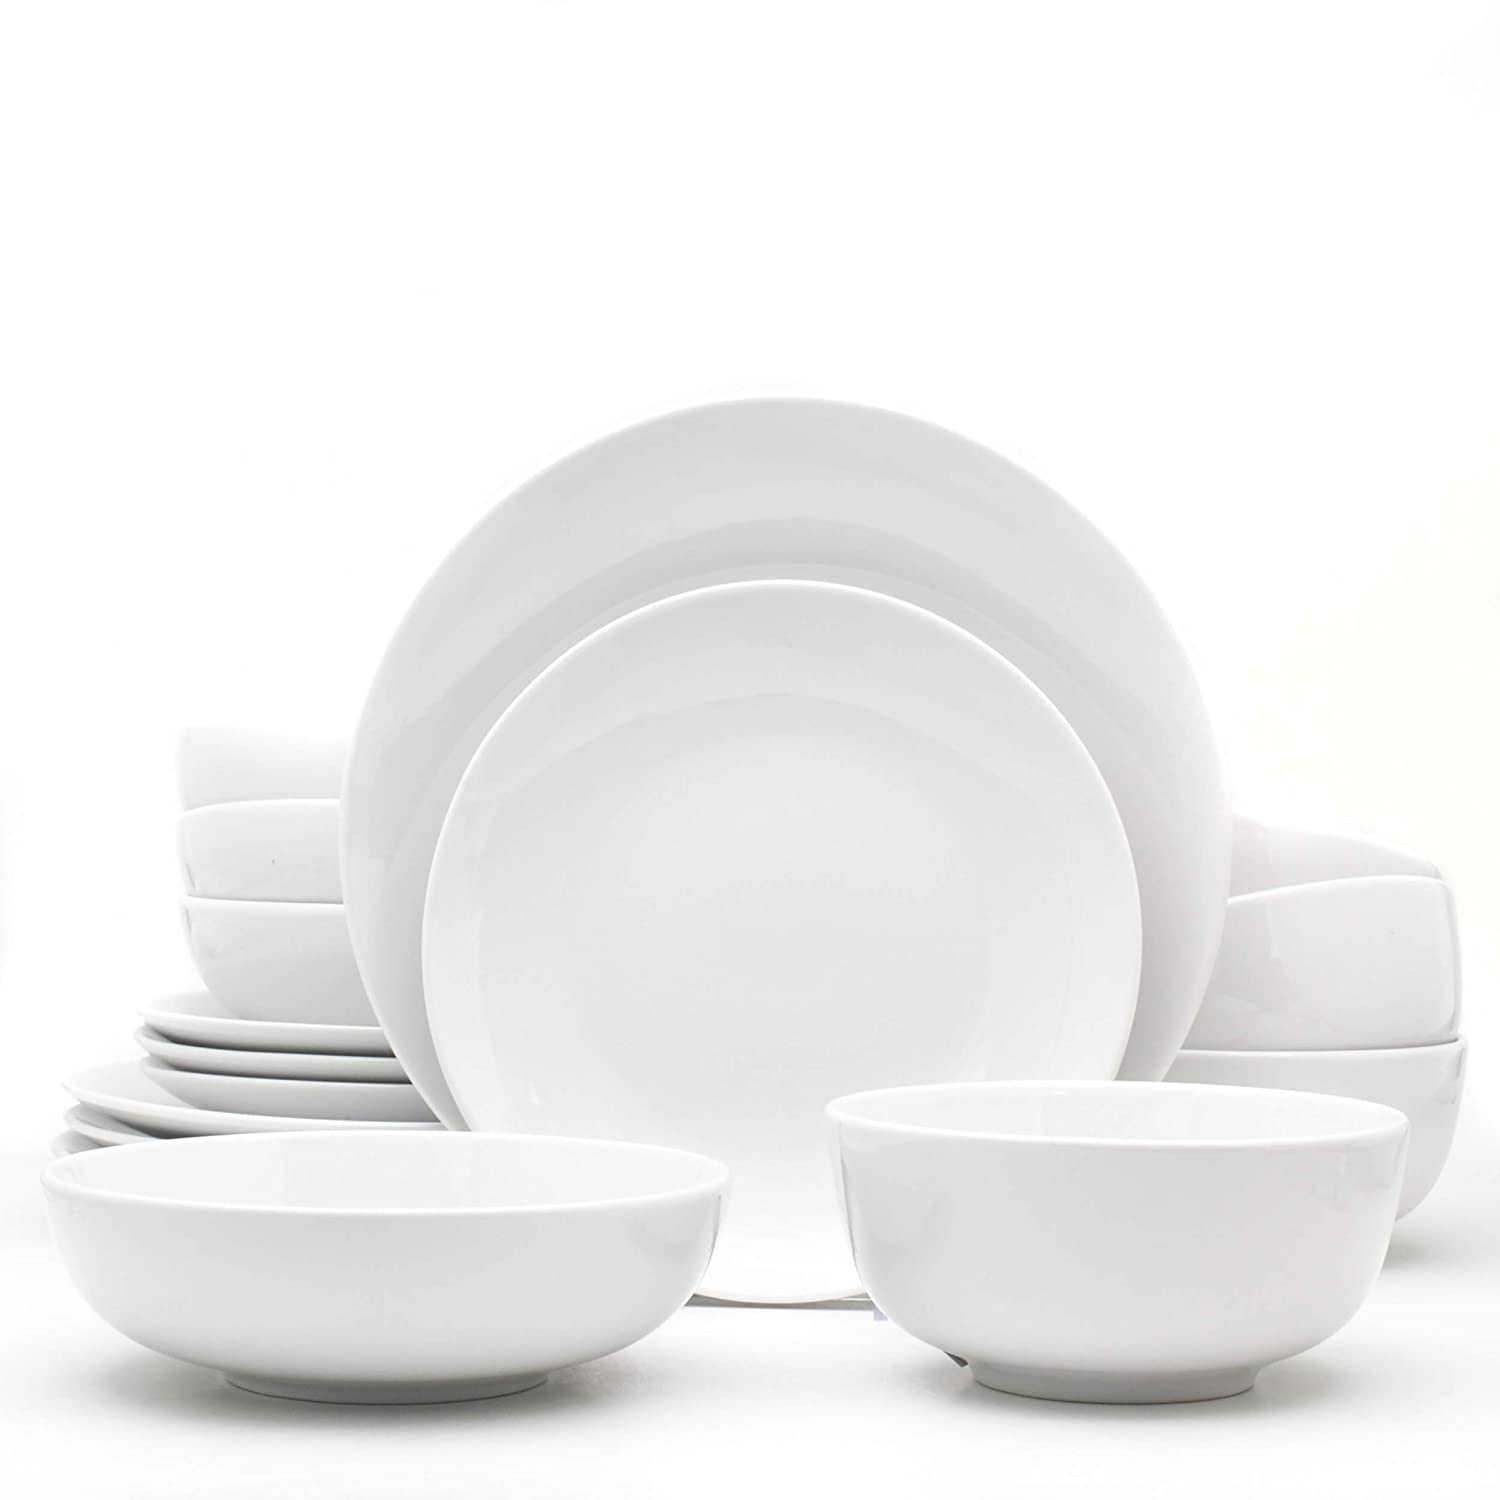 Euro Ceramica WHT-868160 White Essential Dinnerware and Serveware, 16 Piece Set, Service for 4